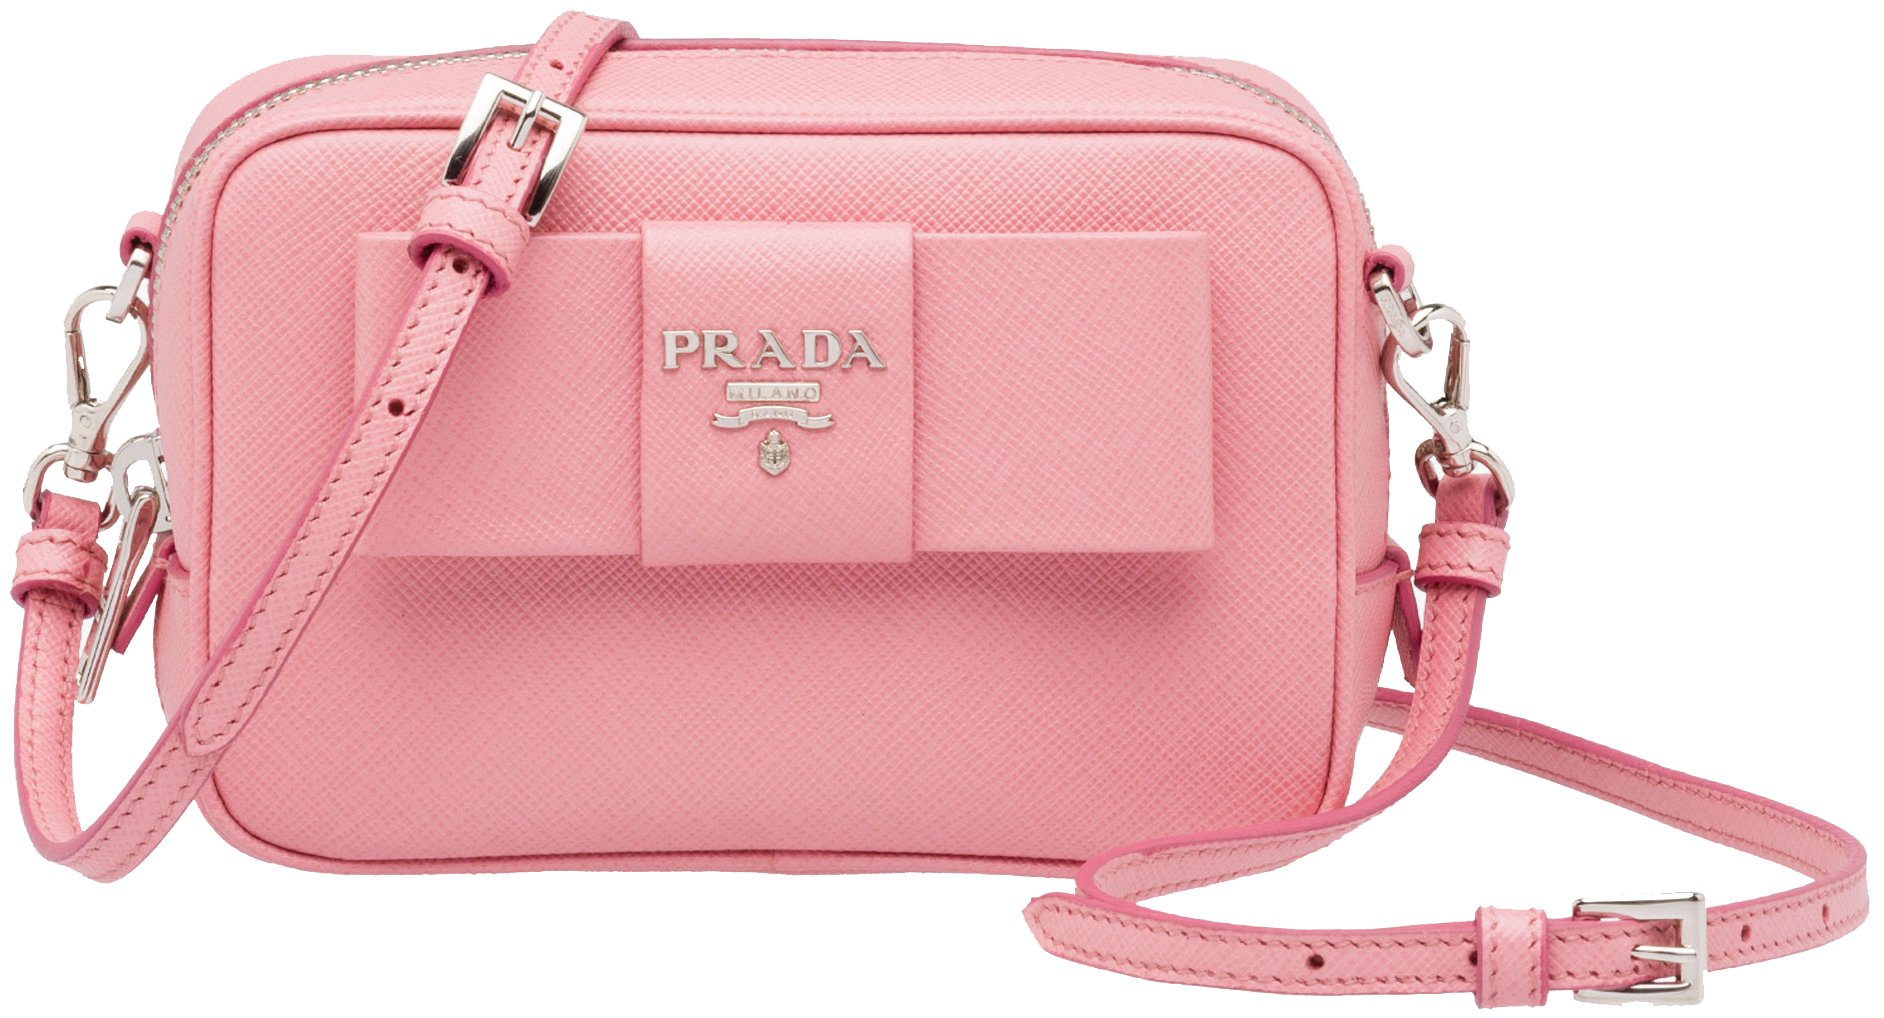 Prada-Bow-COSMETIC-POUCH-with-Chain-3